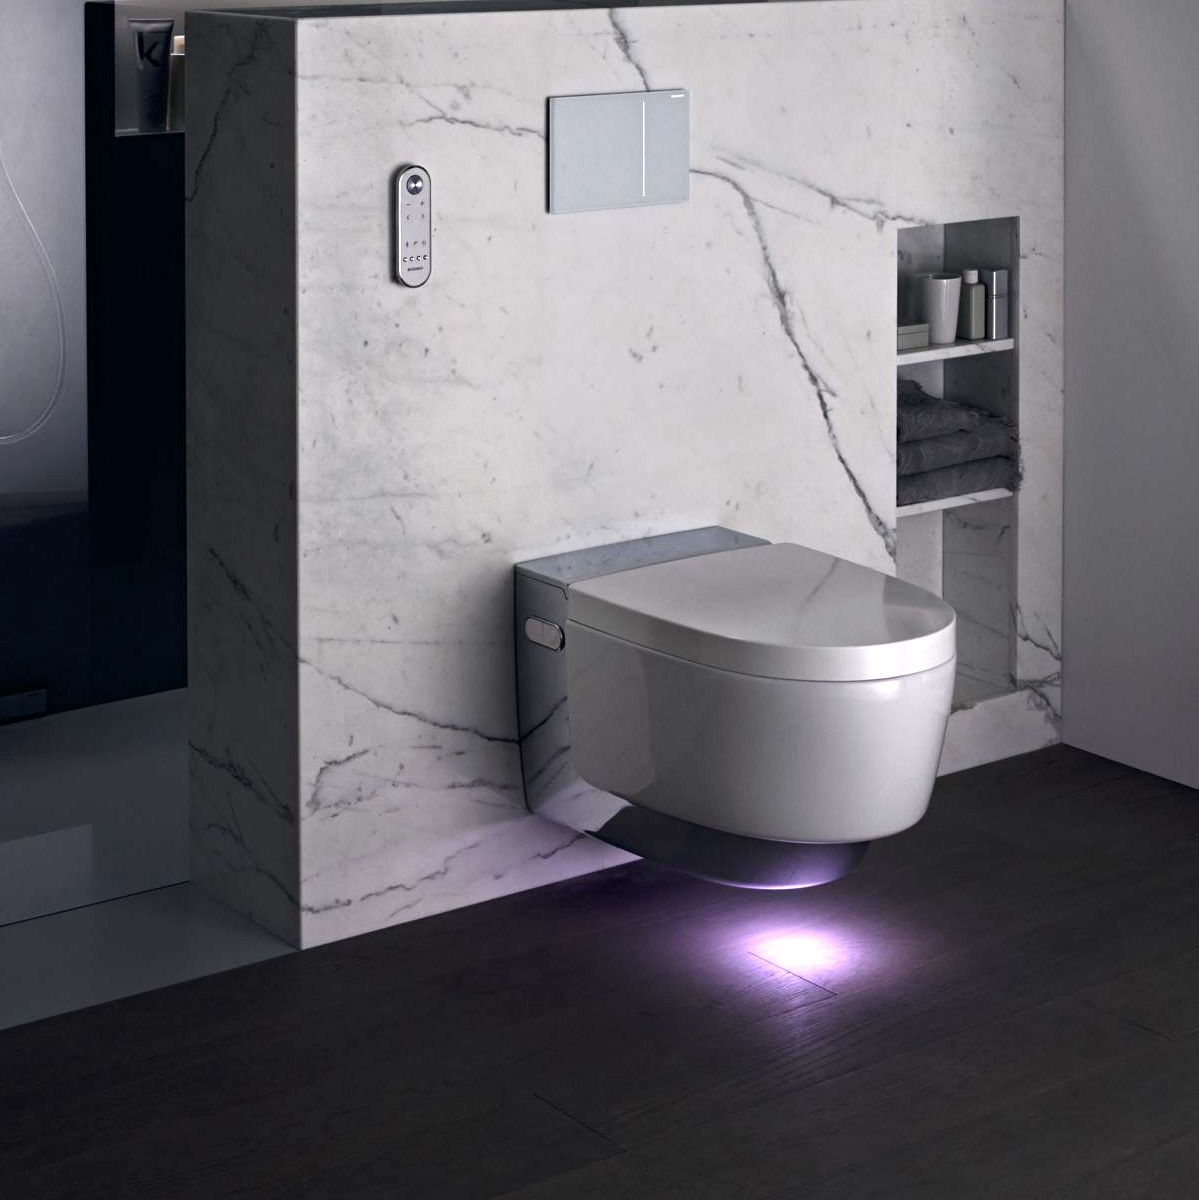 geberit aquaclean mera comfort shower toilet uk bathrooms. Black Bedroom Furniture Sets. Home Design Ideas